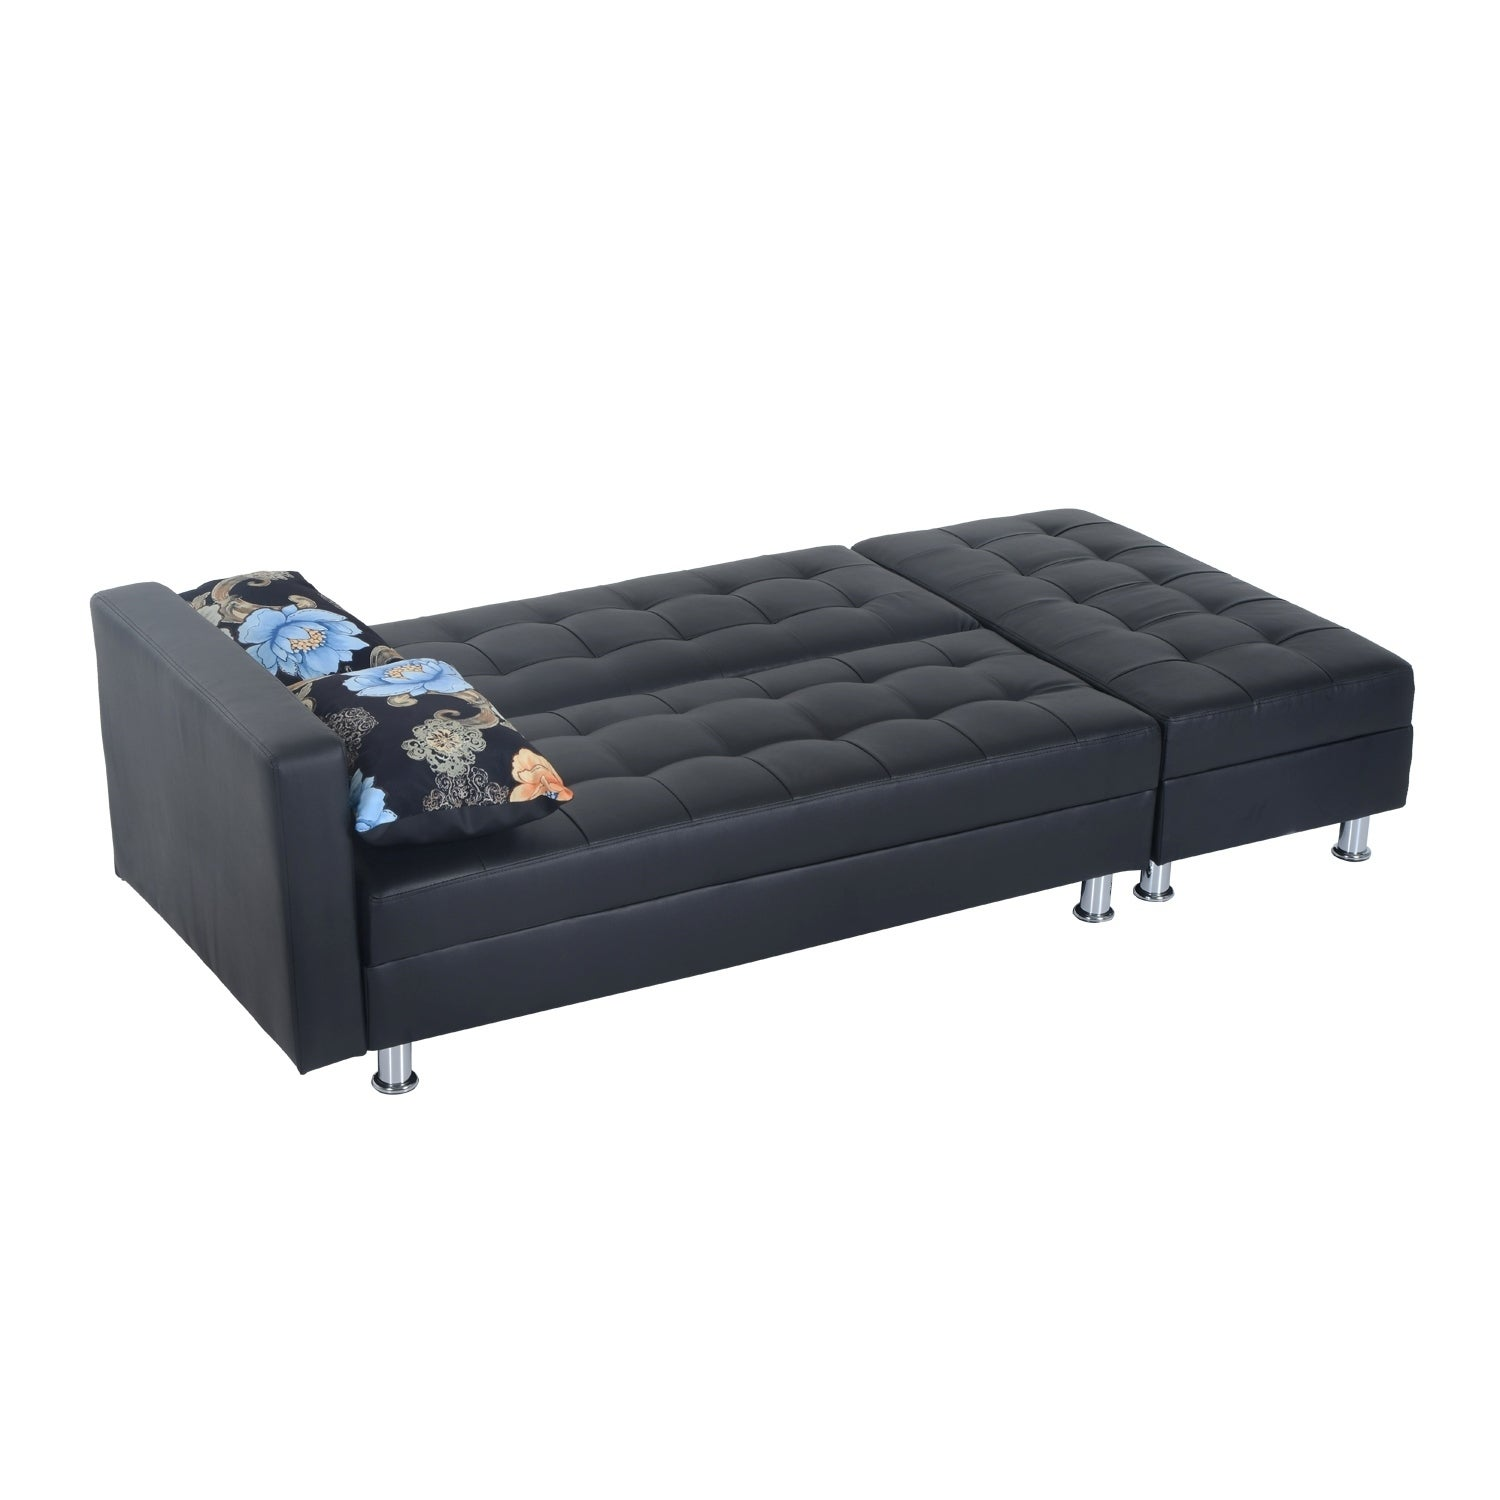 Shop Homcom Faux Leather Convertible Sofa Sleeper Bed W Storage